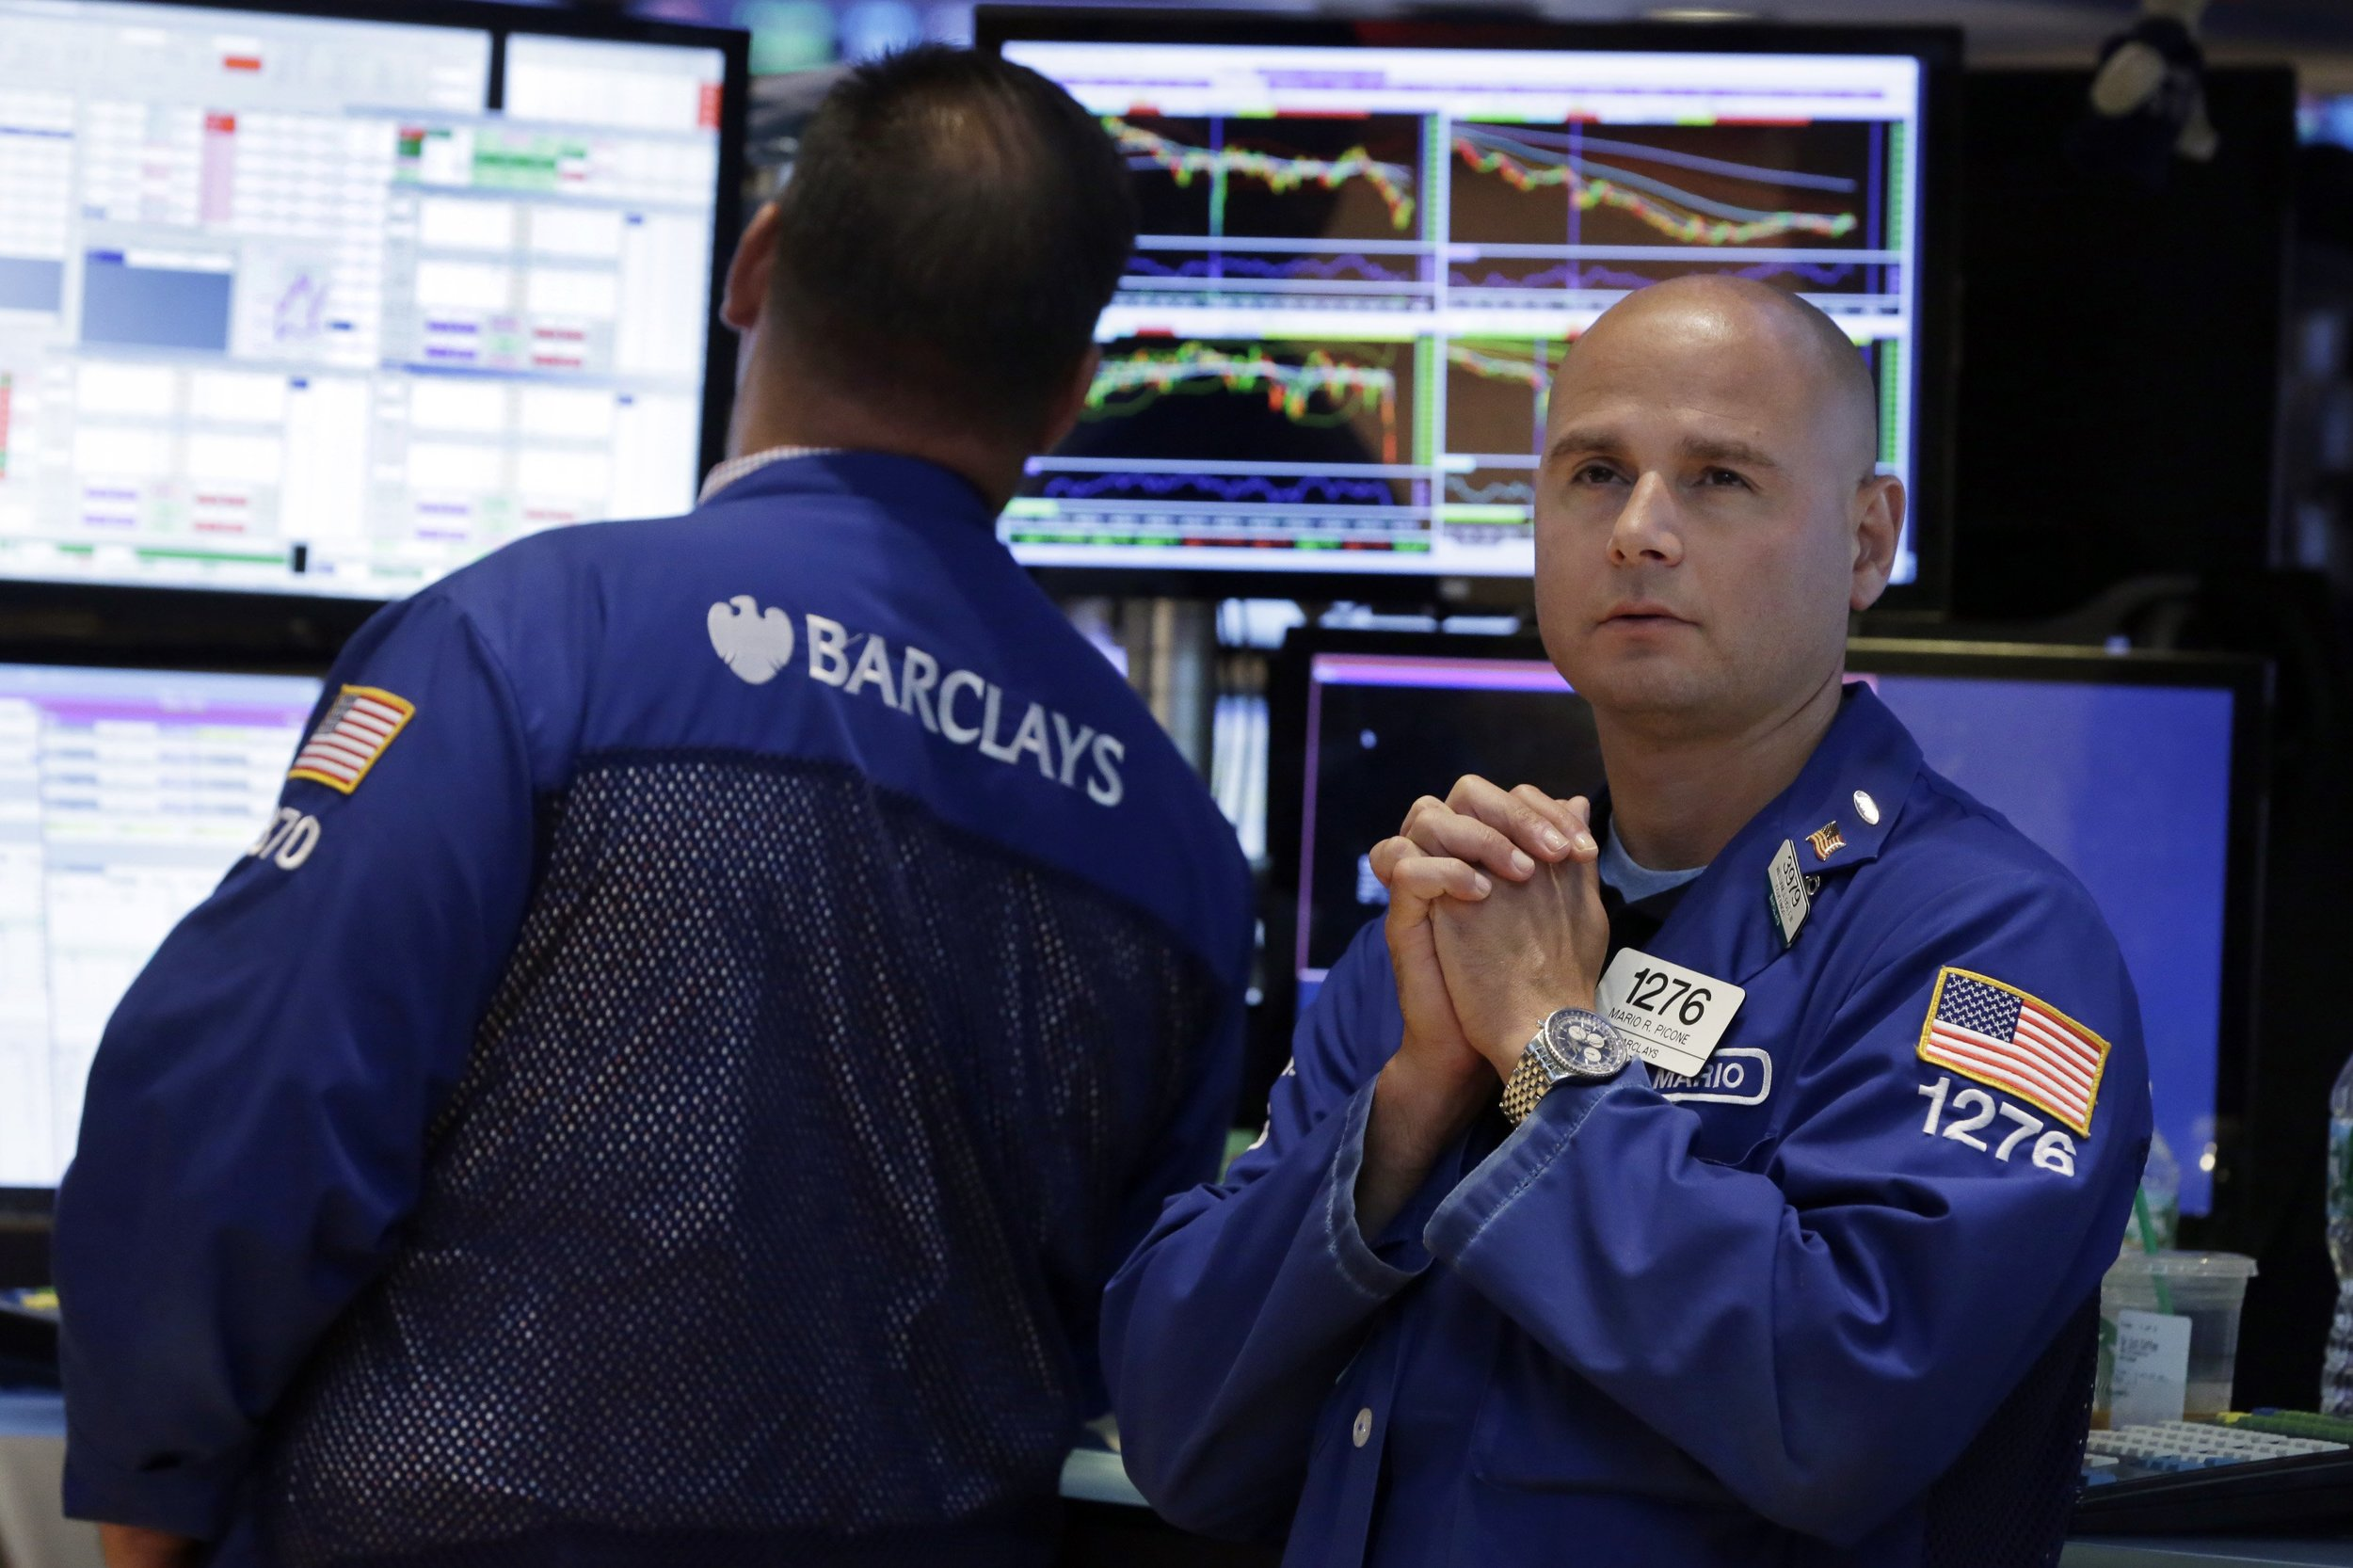 Specialist Mario Picone, right, watches the numbers as he works on the floor of the New York Stock Exchange, Friday, Aug. 21, 2015. The Dow Jones industrial average has plunged more than 530 points and is in a correction amid a global sell-off sparked by fears about China's slowing economy. Oil tumbled below $40 per barrel for the first time since the financial crisis. (AP Photo/Richard Drew)